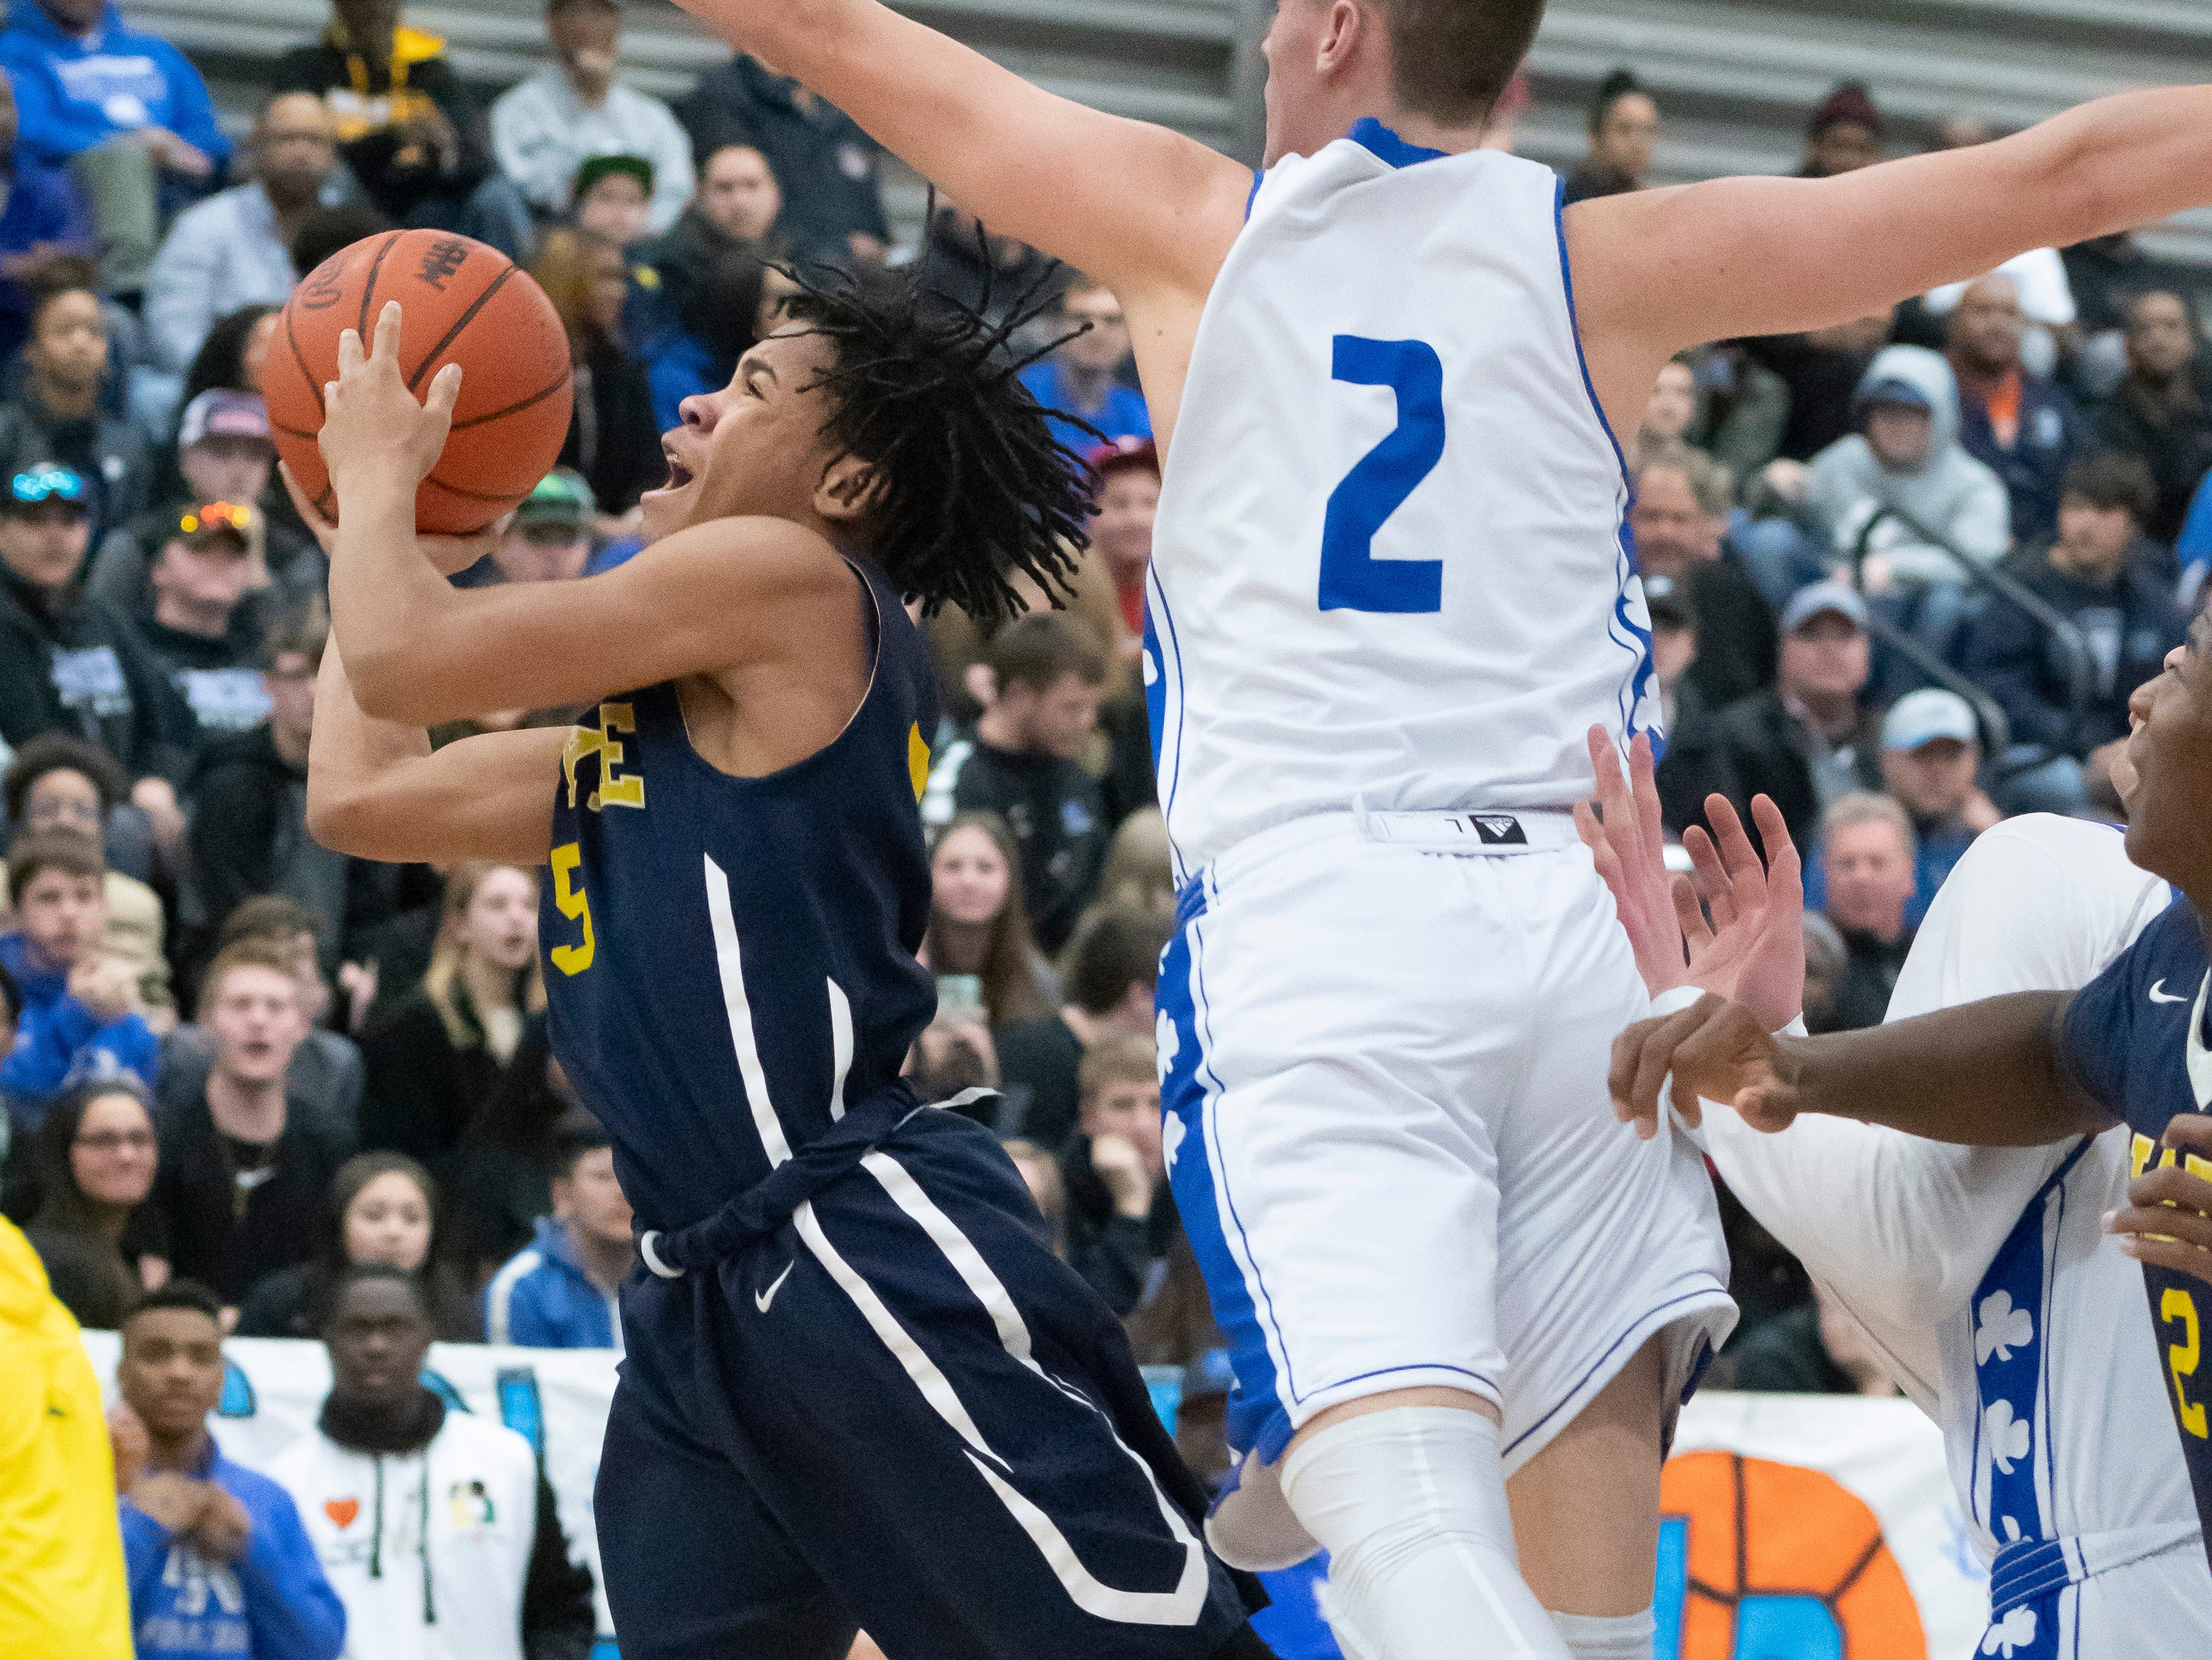 Wayne Memorial guard Kenneth Bowie, left, is defended by Detroit Catholic Central's Brendan Downs in the first half.